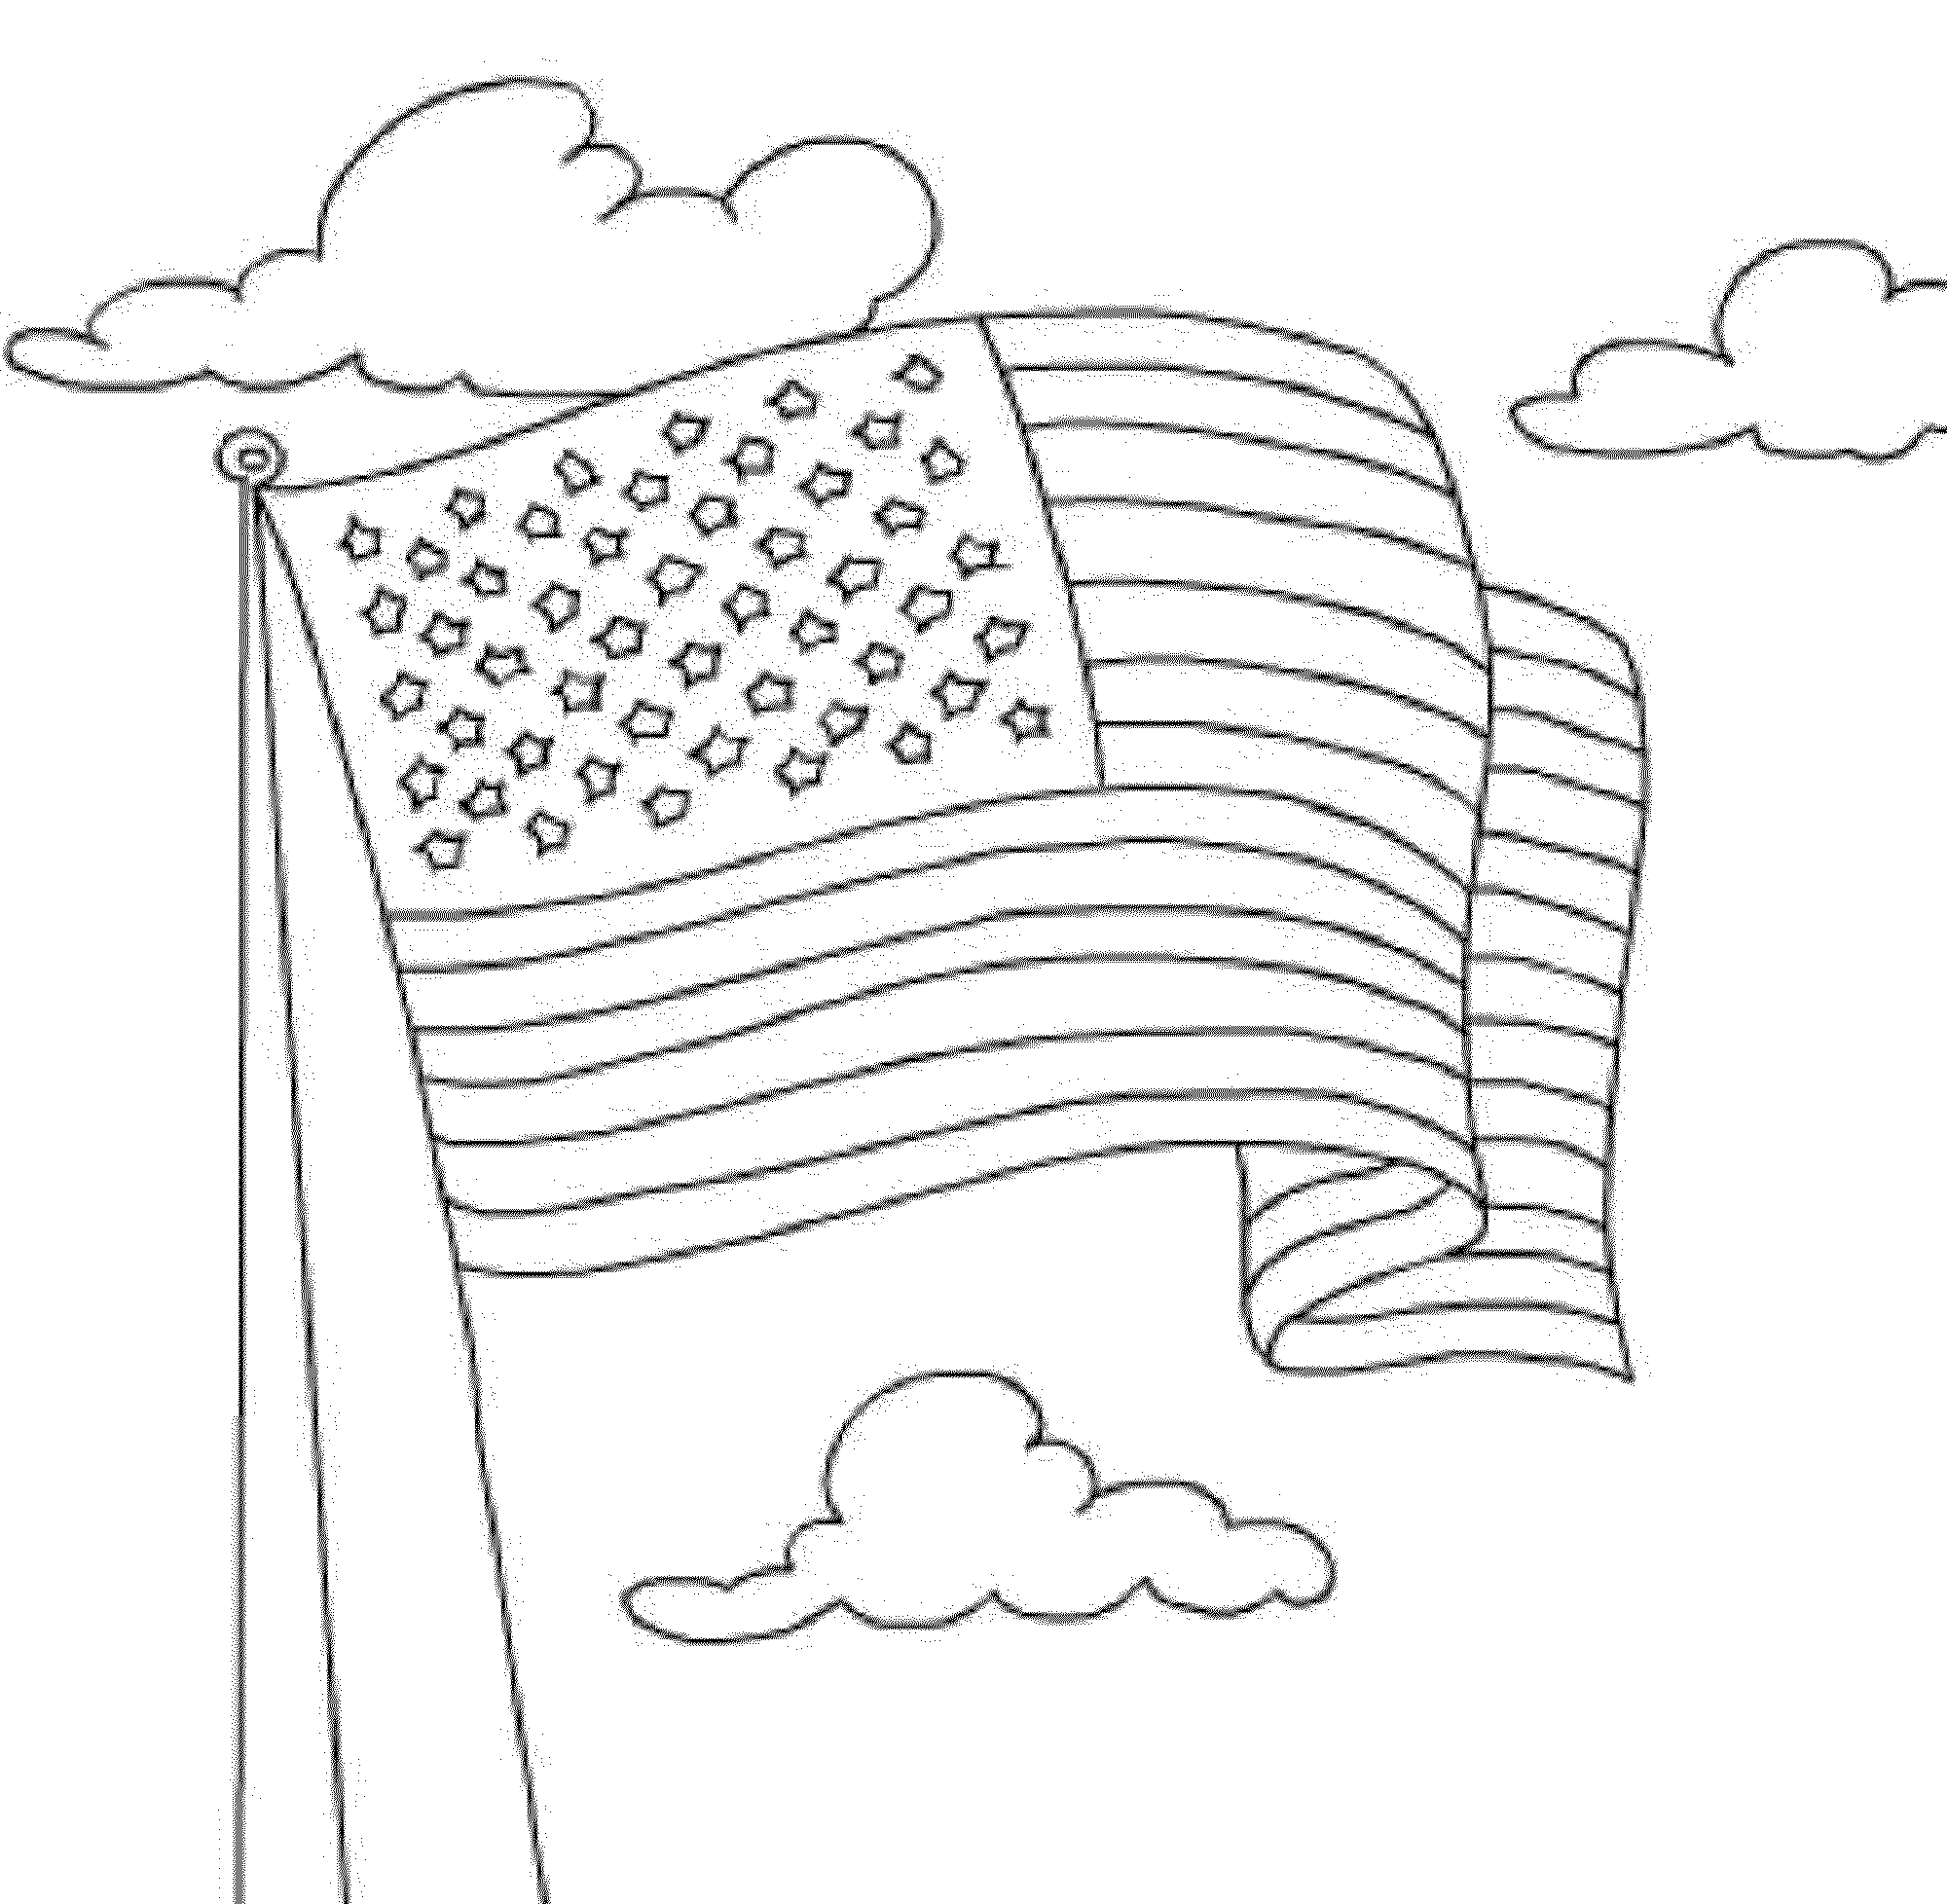 usa flag to colour coloring pages of military flags in 2020 american flag flag usa to colour